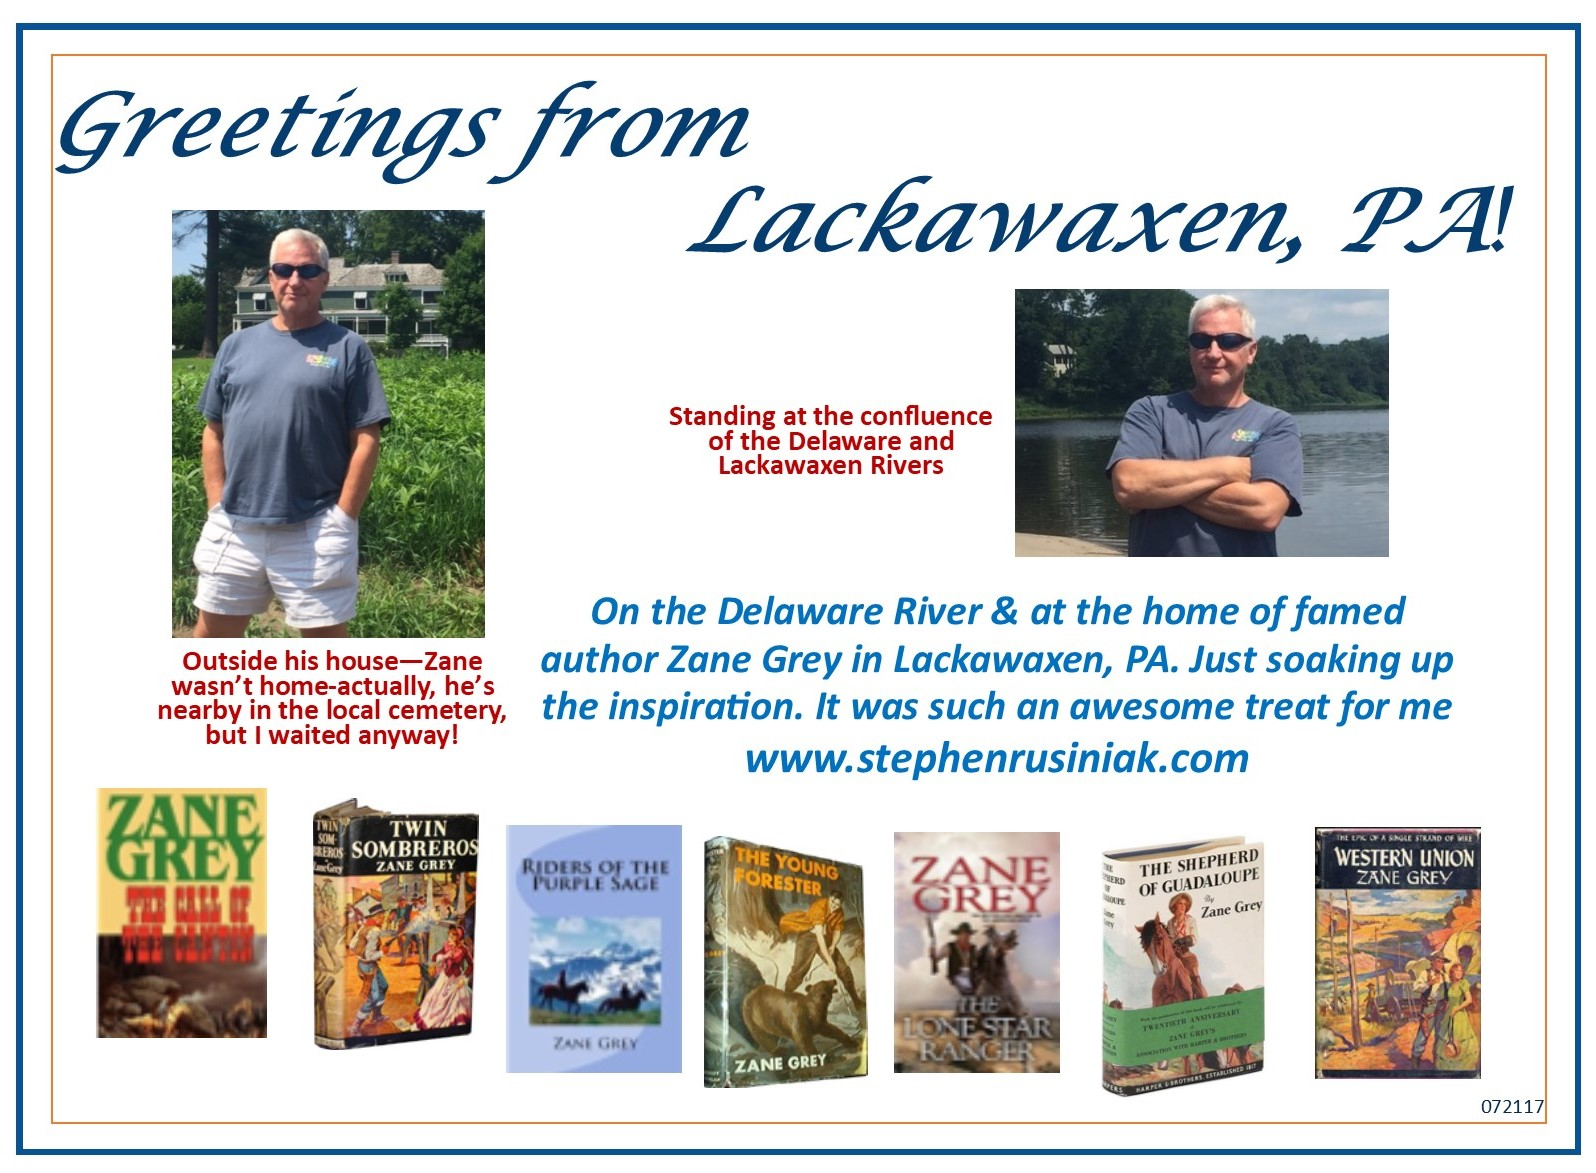 Greetings from Lackawaxen PA 072117.jpg